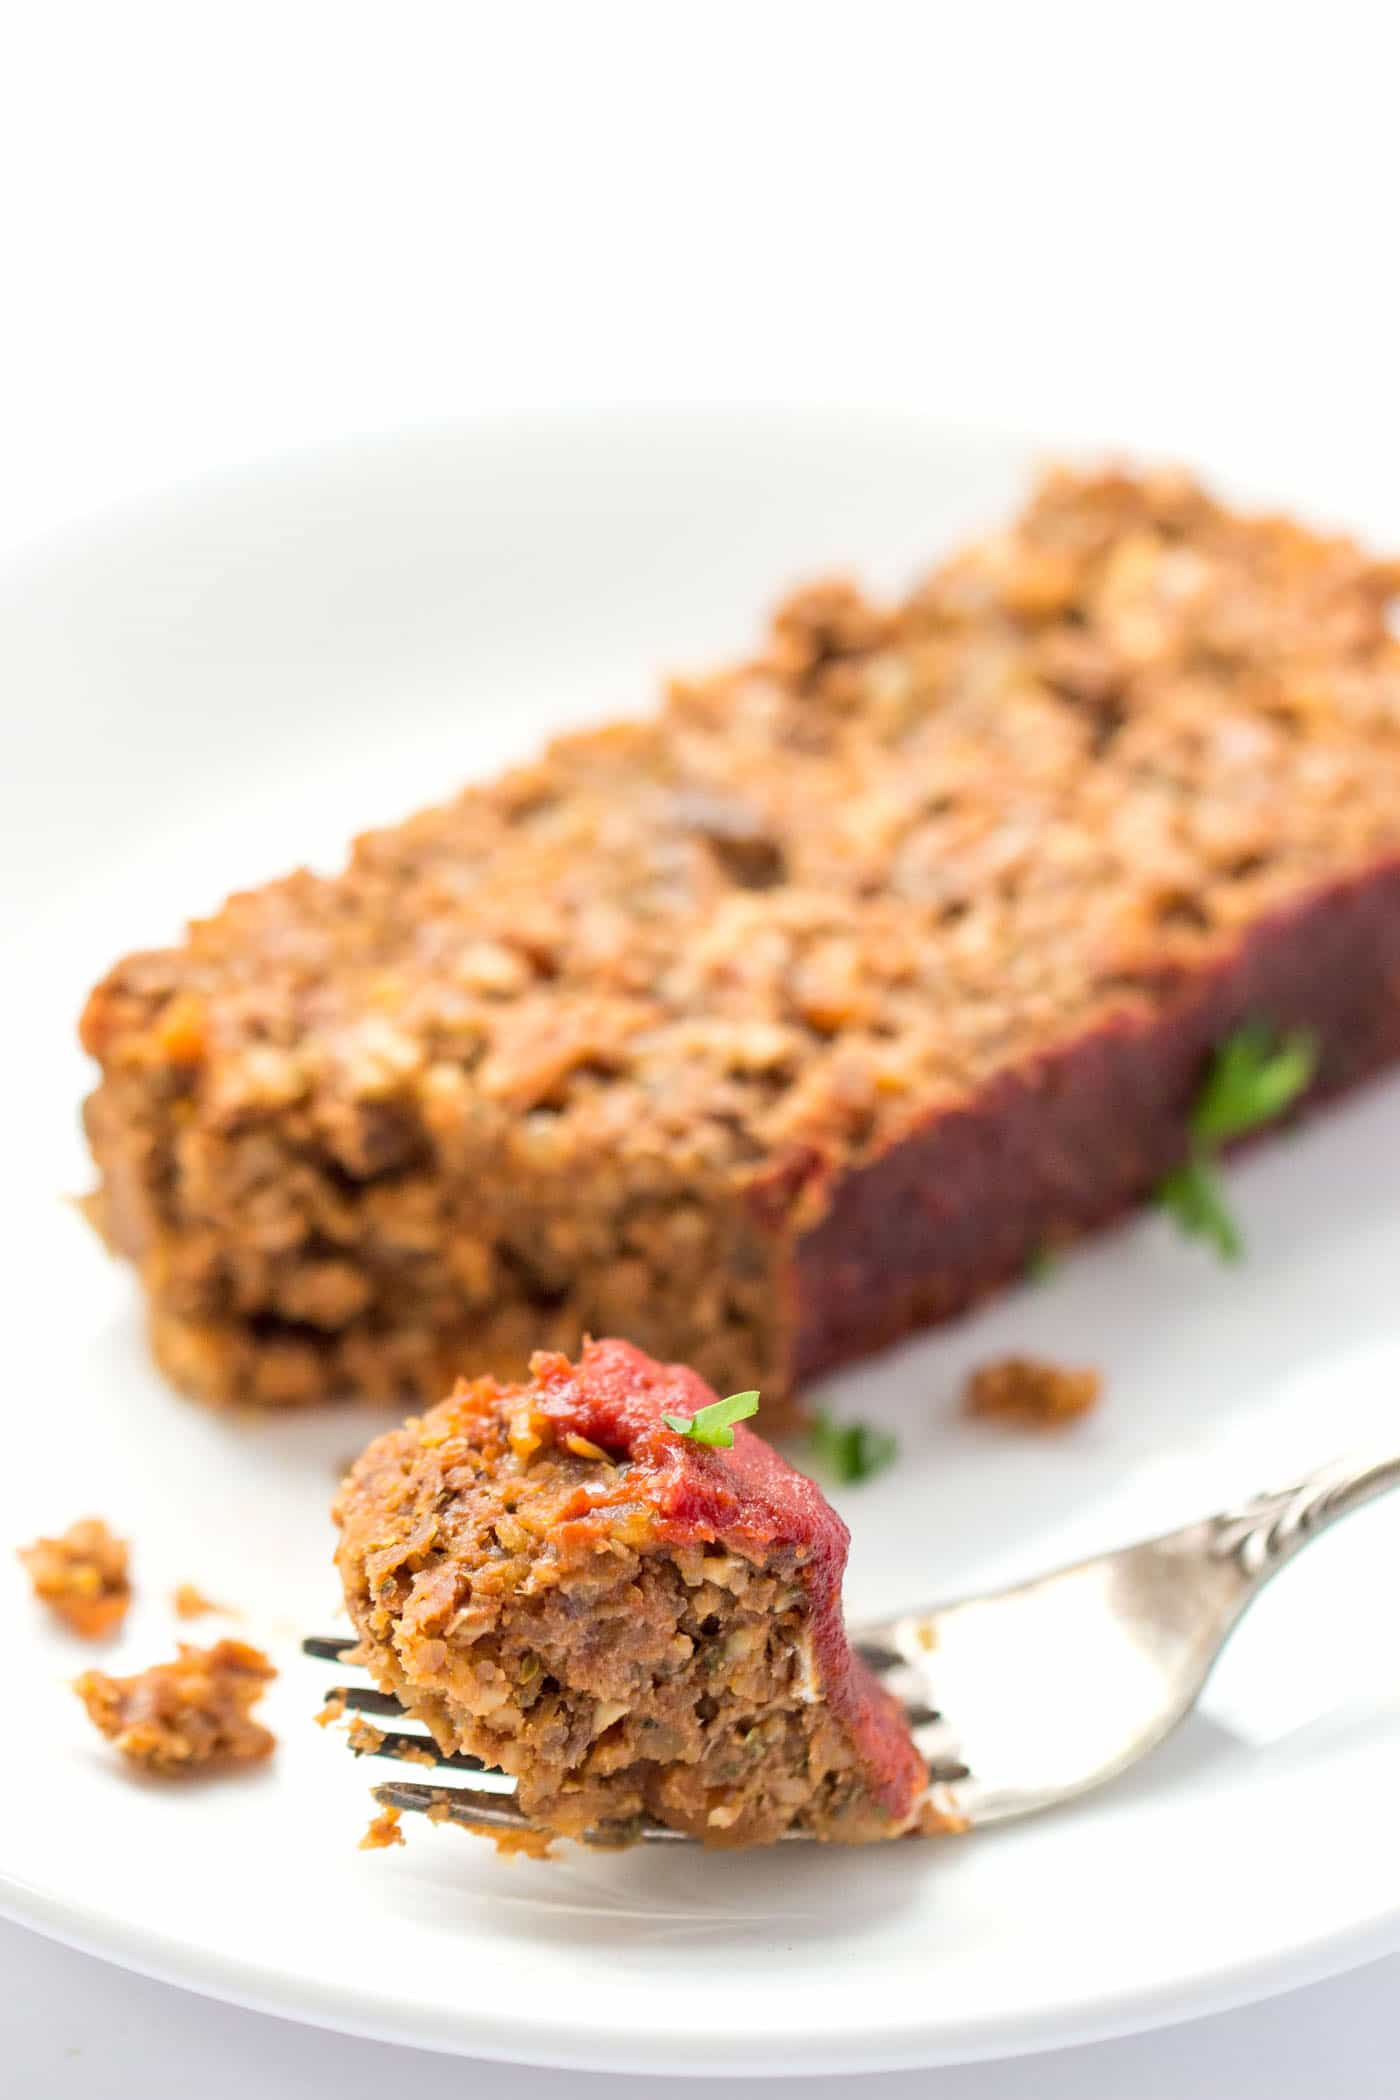 This is definitely THE BEST vegan meatloaf I have ever tasted! I love the addition of lentils and quinoa - it makes it so filling without the need for any meat at all.